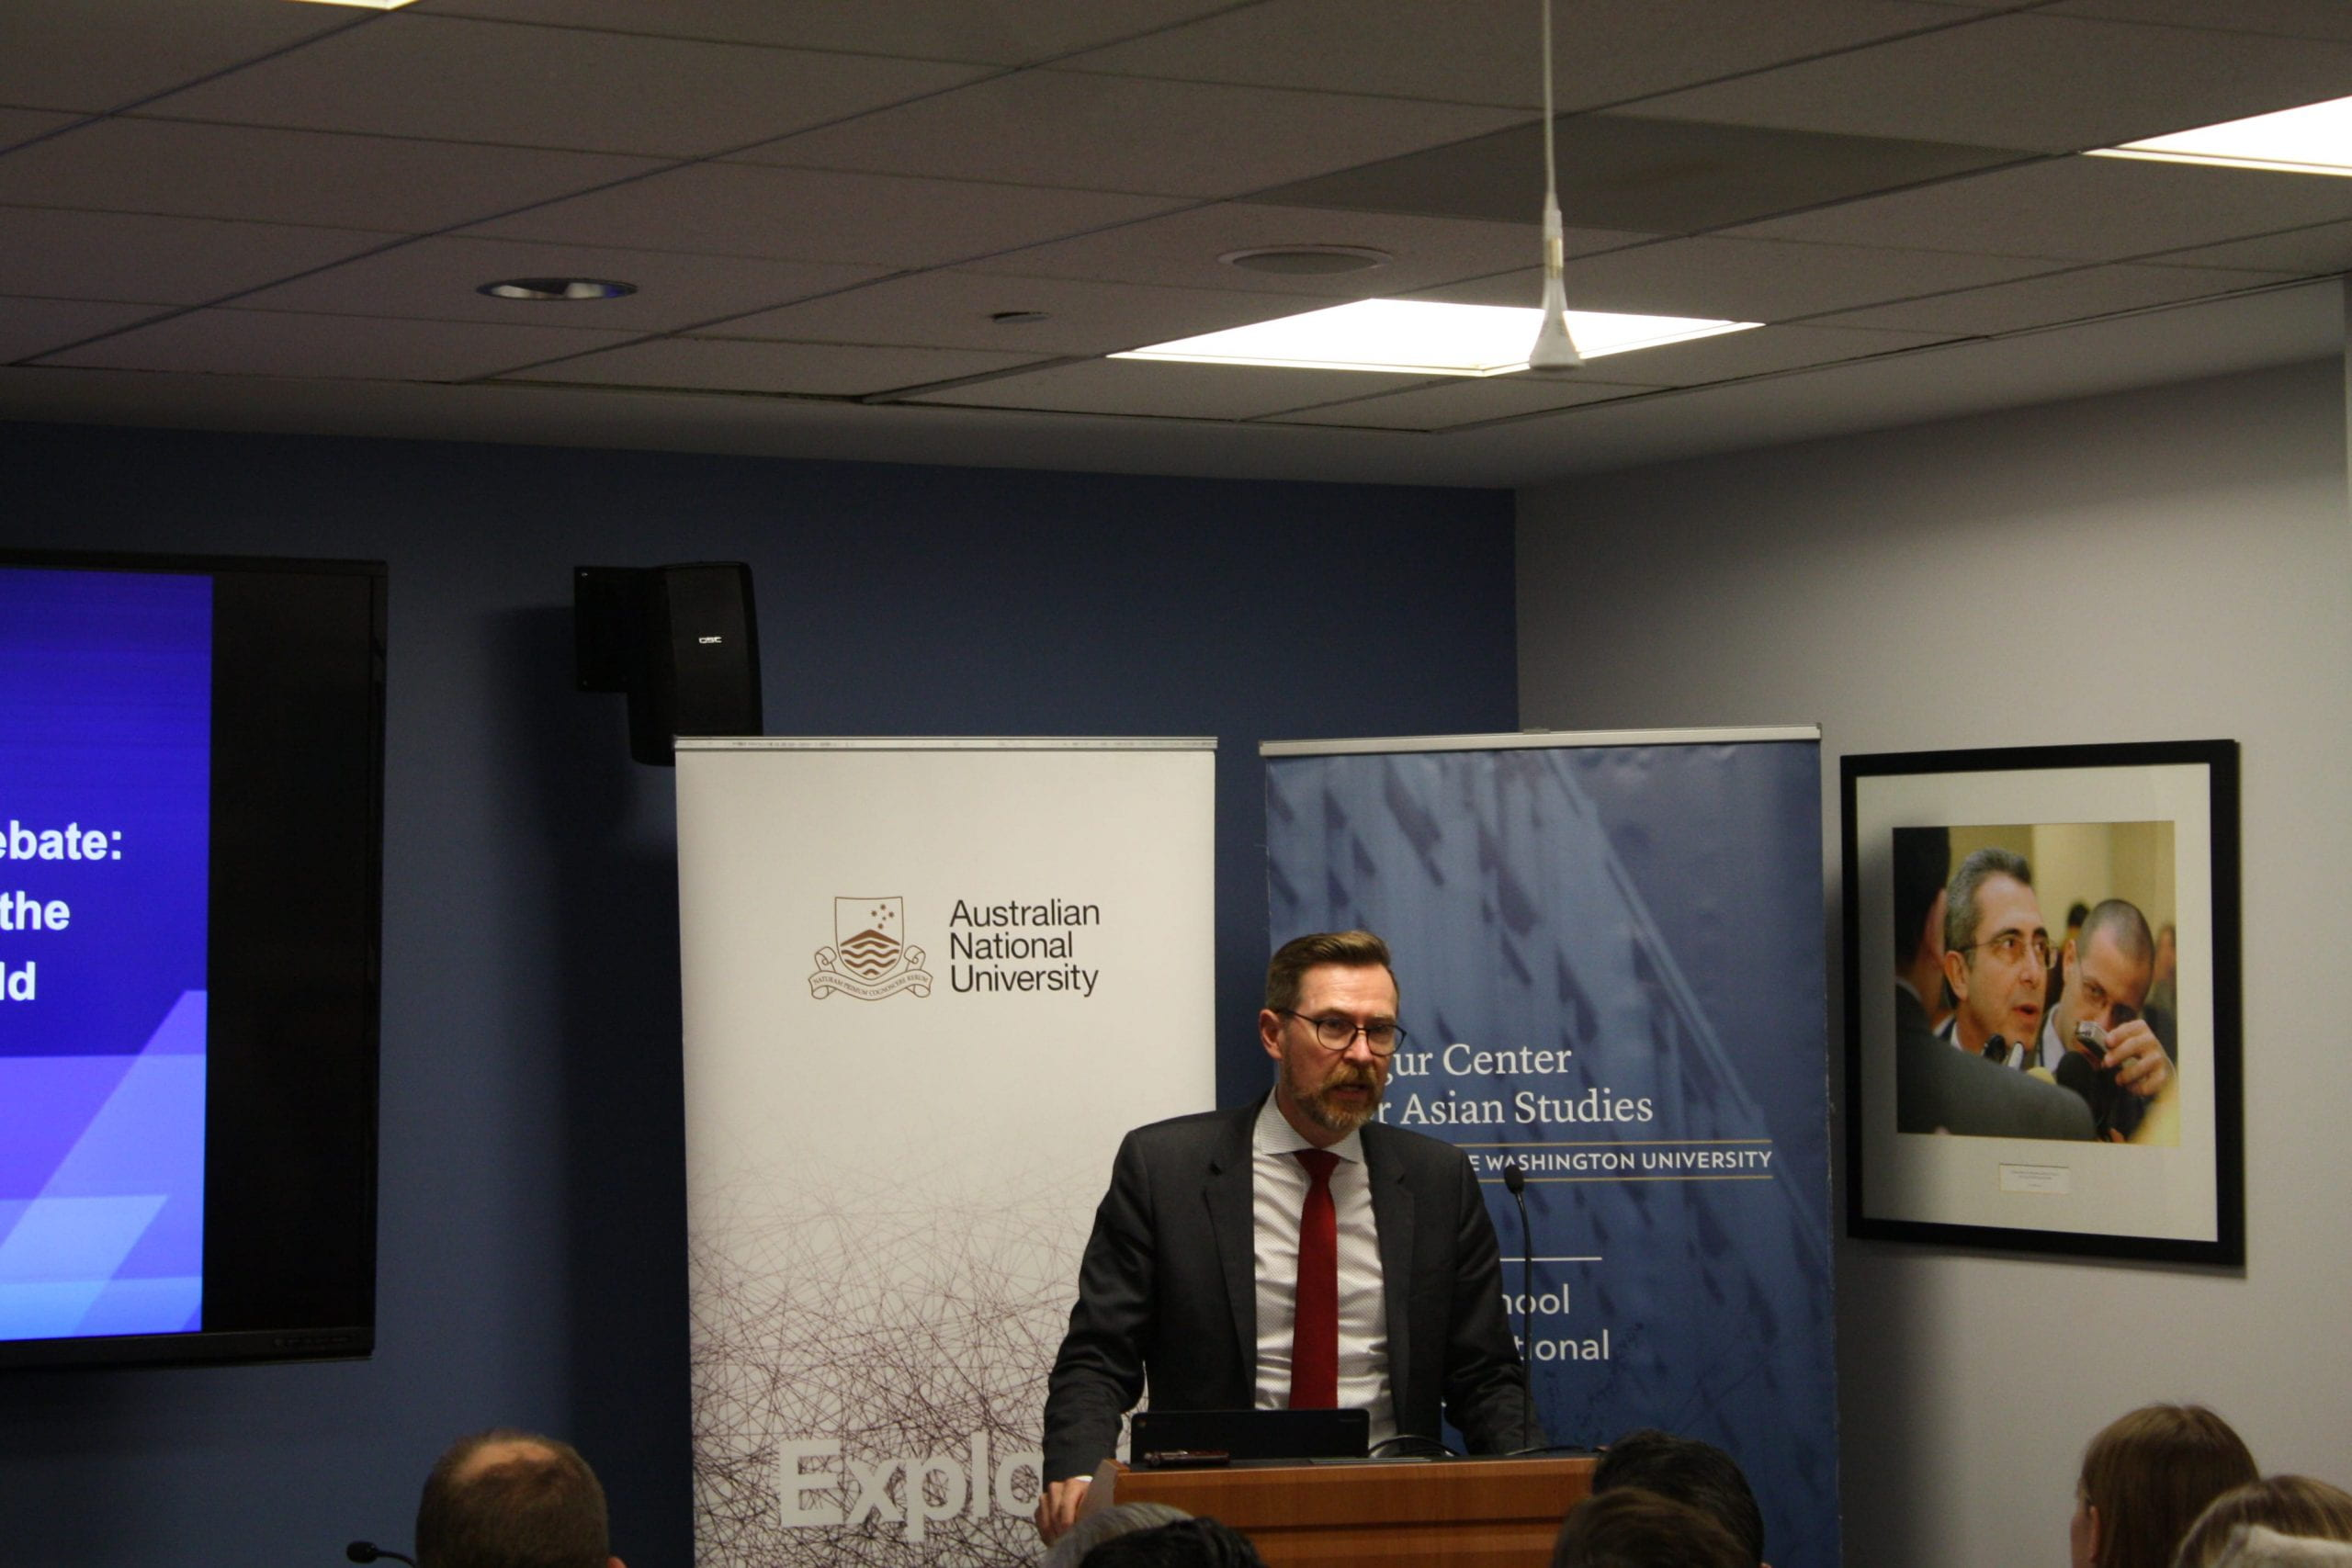 """Professor Rory Medcalf from ANU talking about """"The Great Australian China Debate: Issues and Implications for the United States and the World"""" on September 10, 2018."""